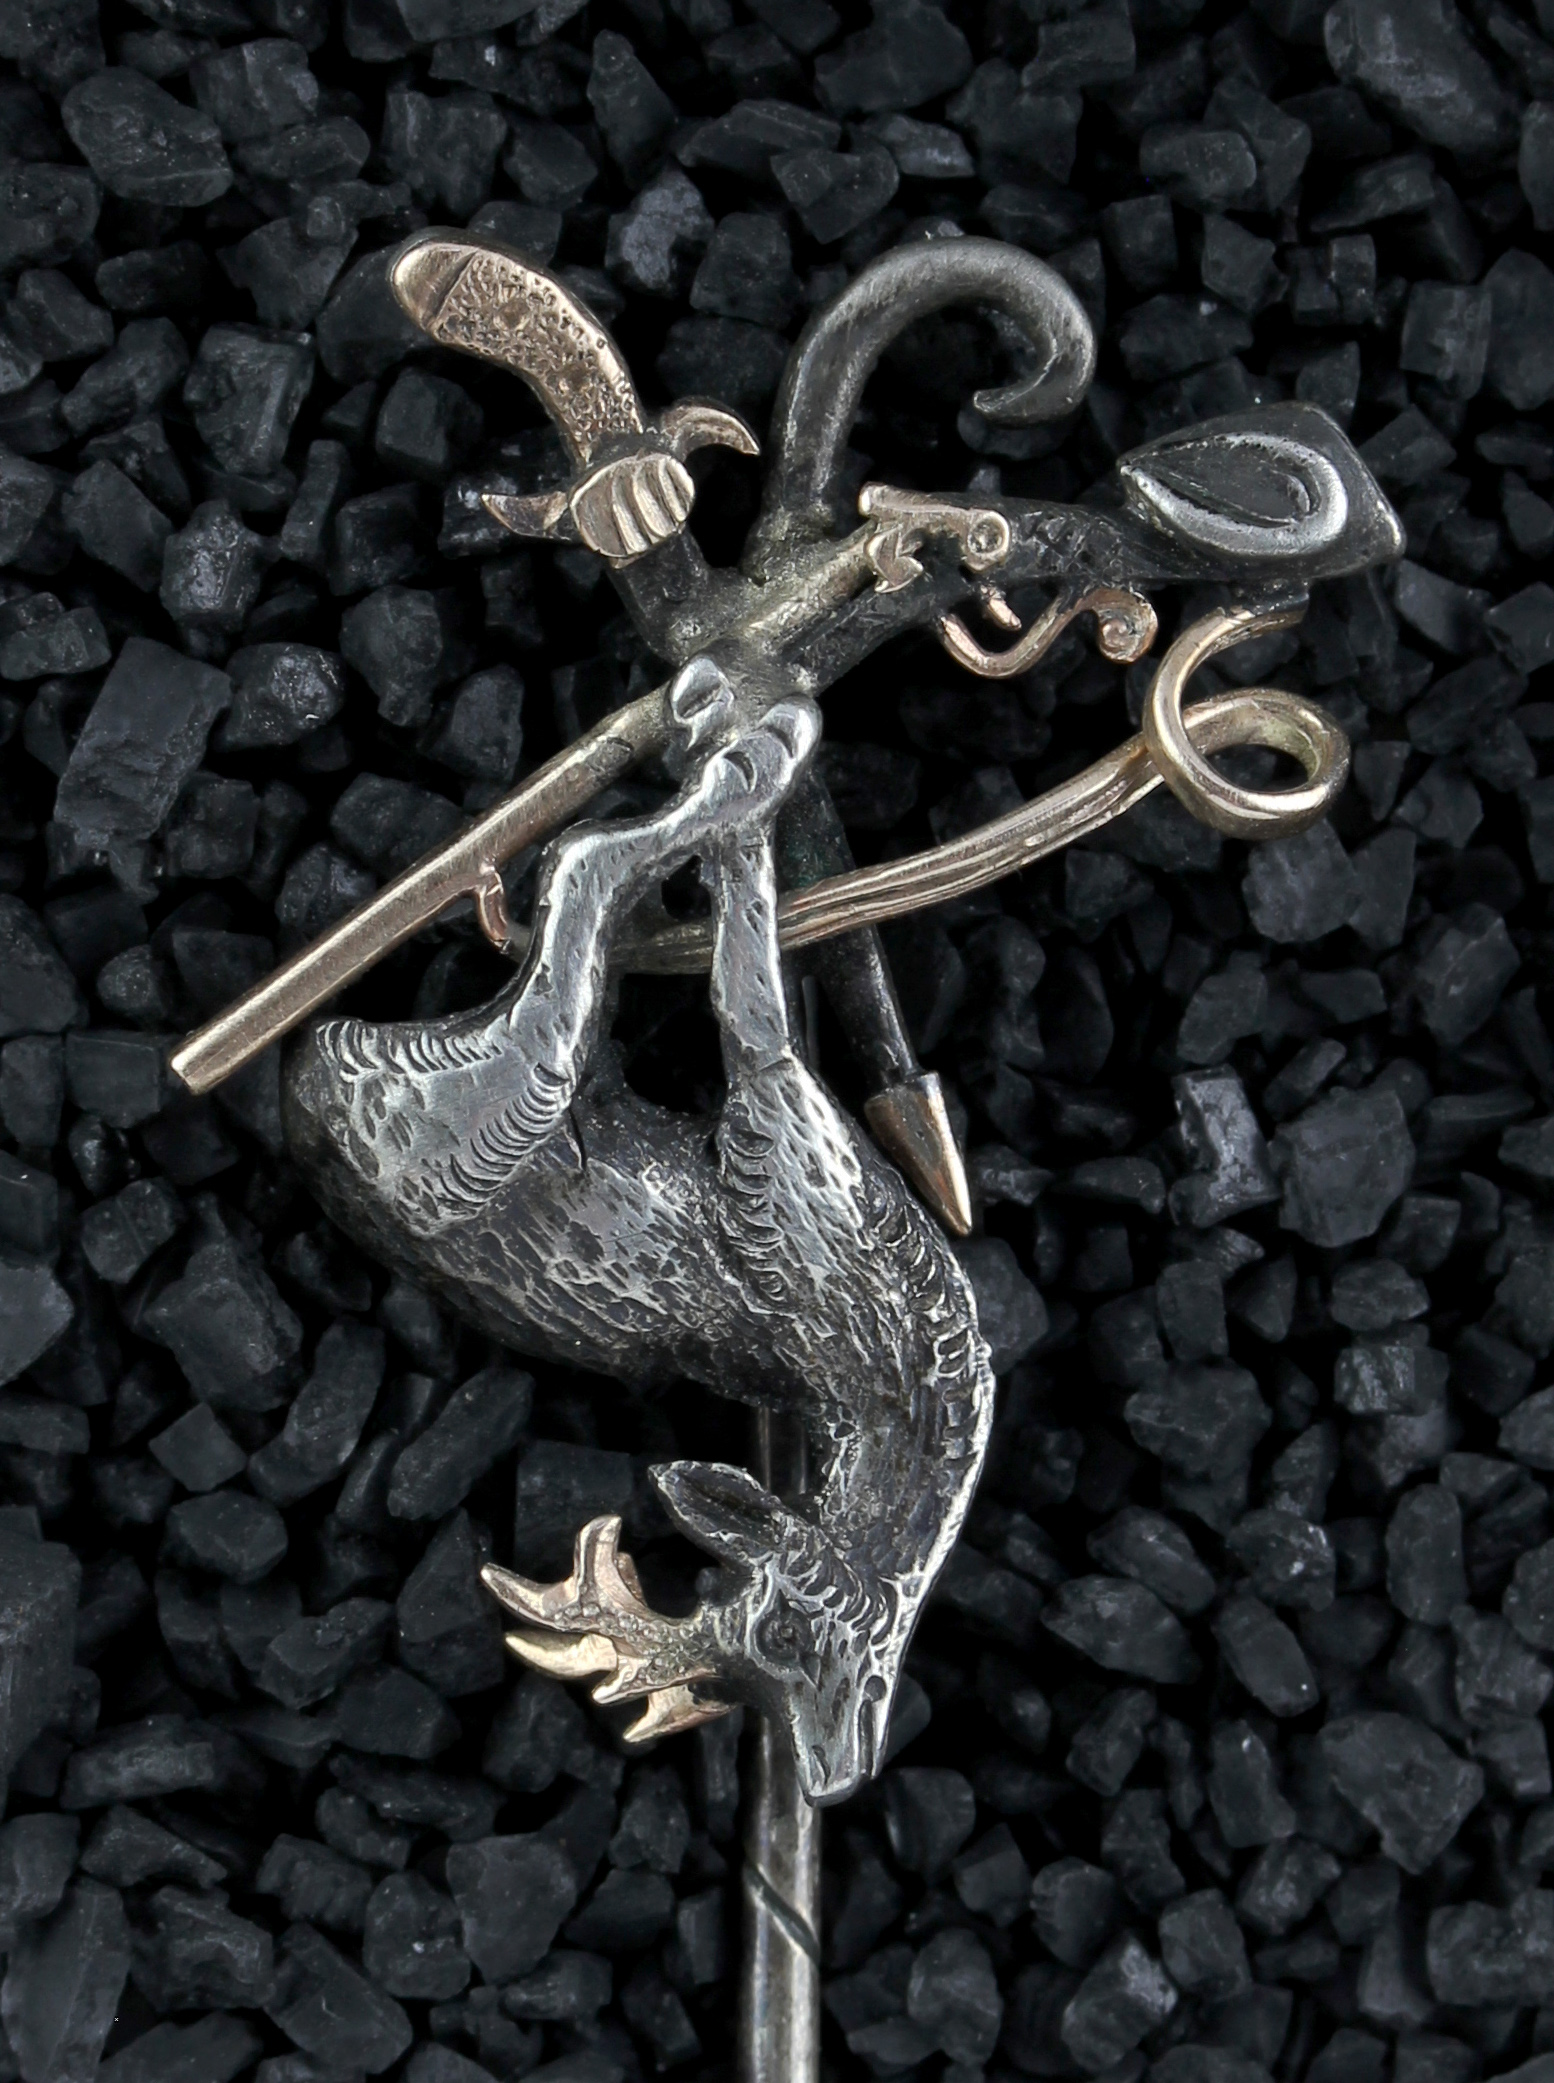 Lapel pin with a roebuck in silver & gold